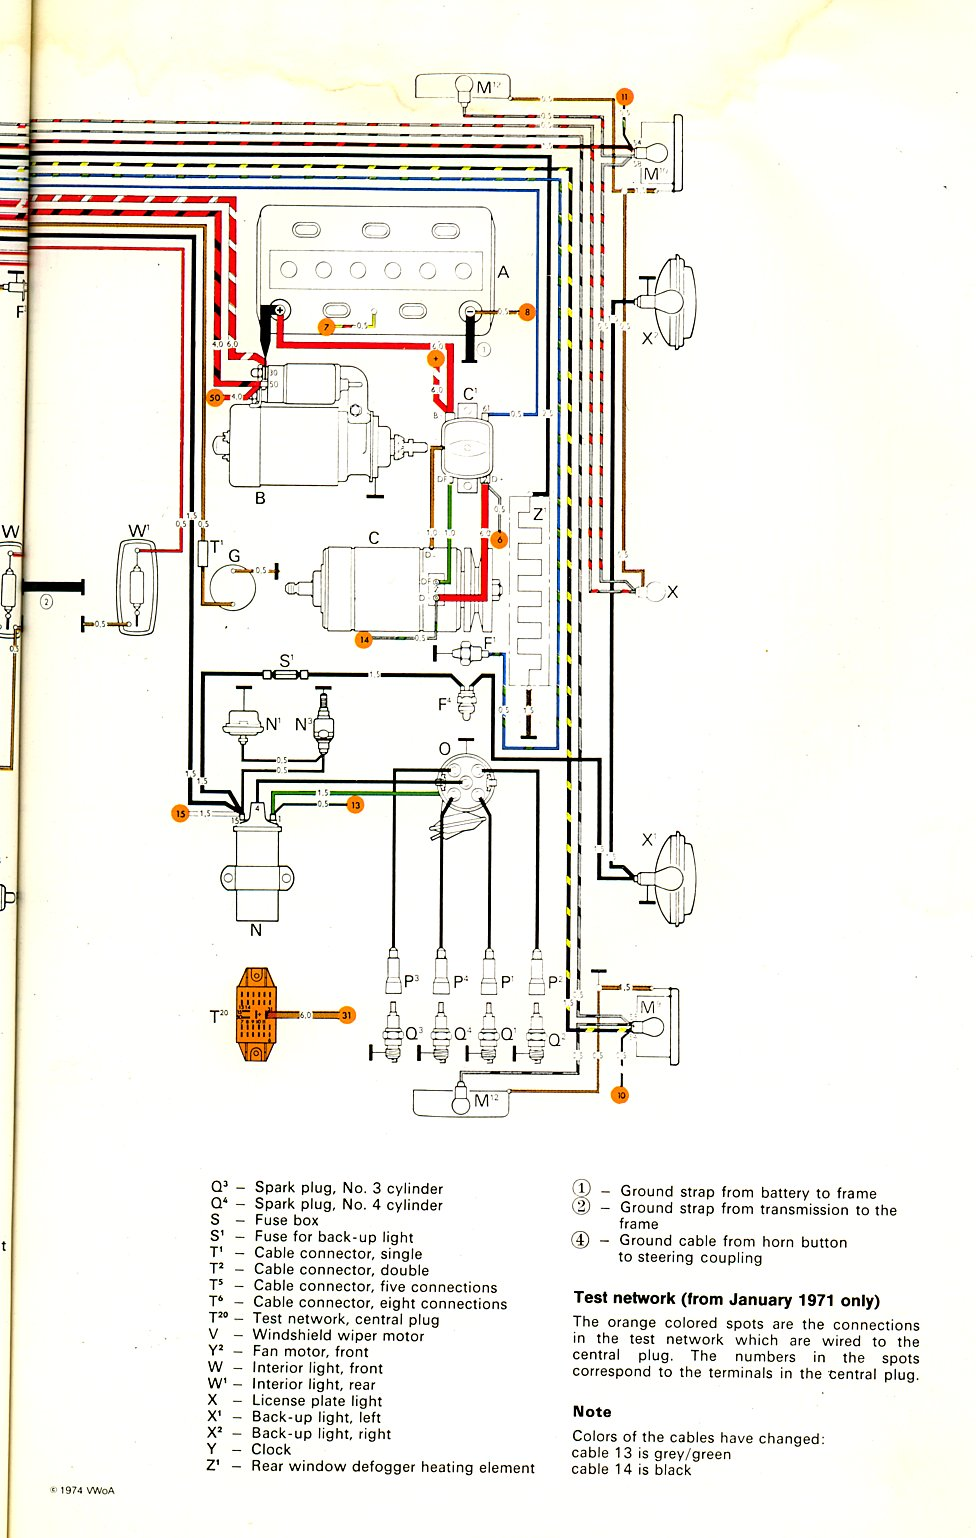 1971 Novabackup Light Wiring Diagrams Diagram Libraries Firebird Dome 68 Library1971 12